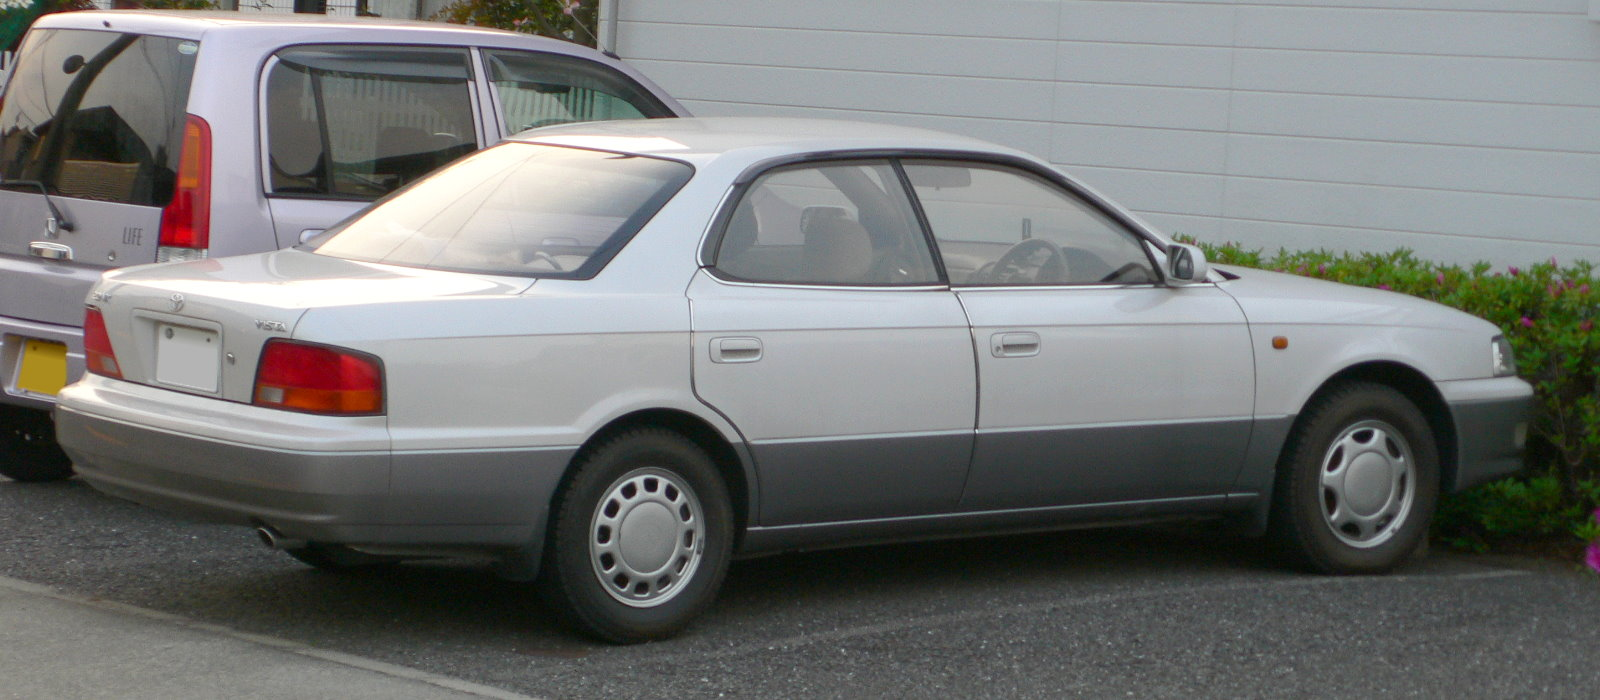 Toyota vista 1996 photo - 1